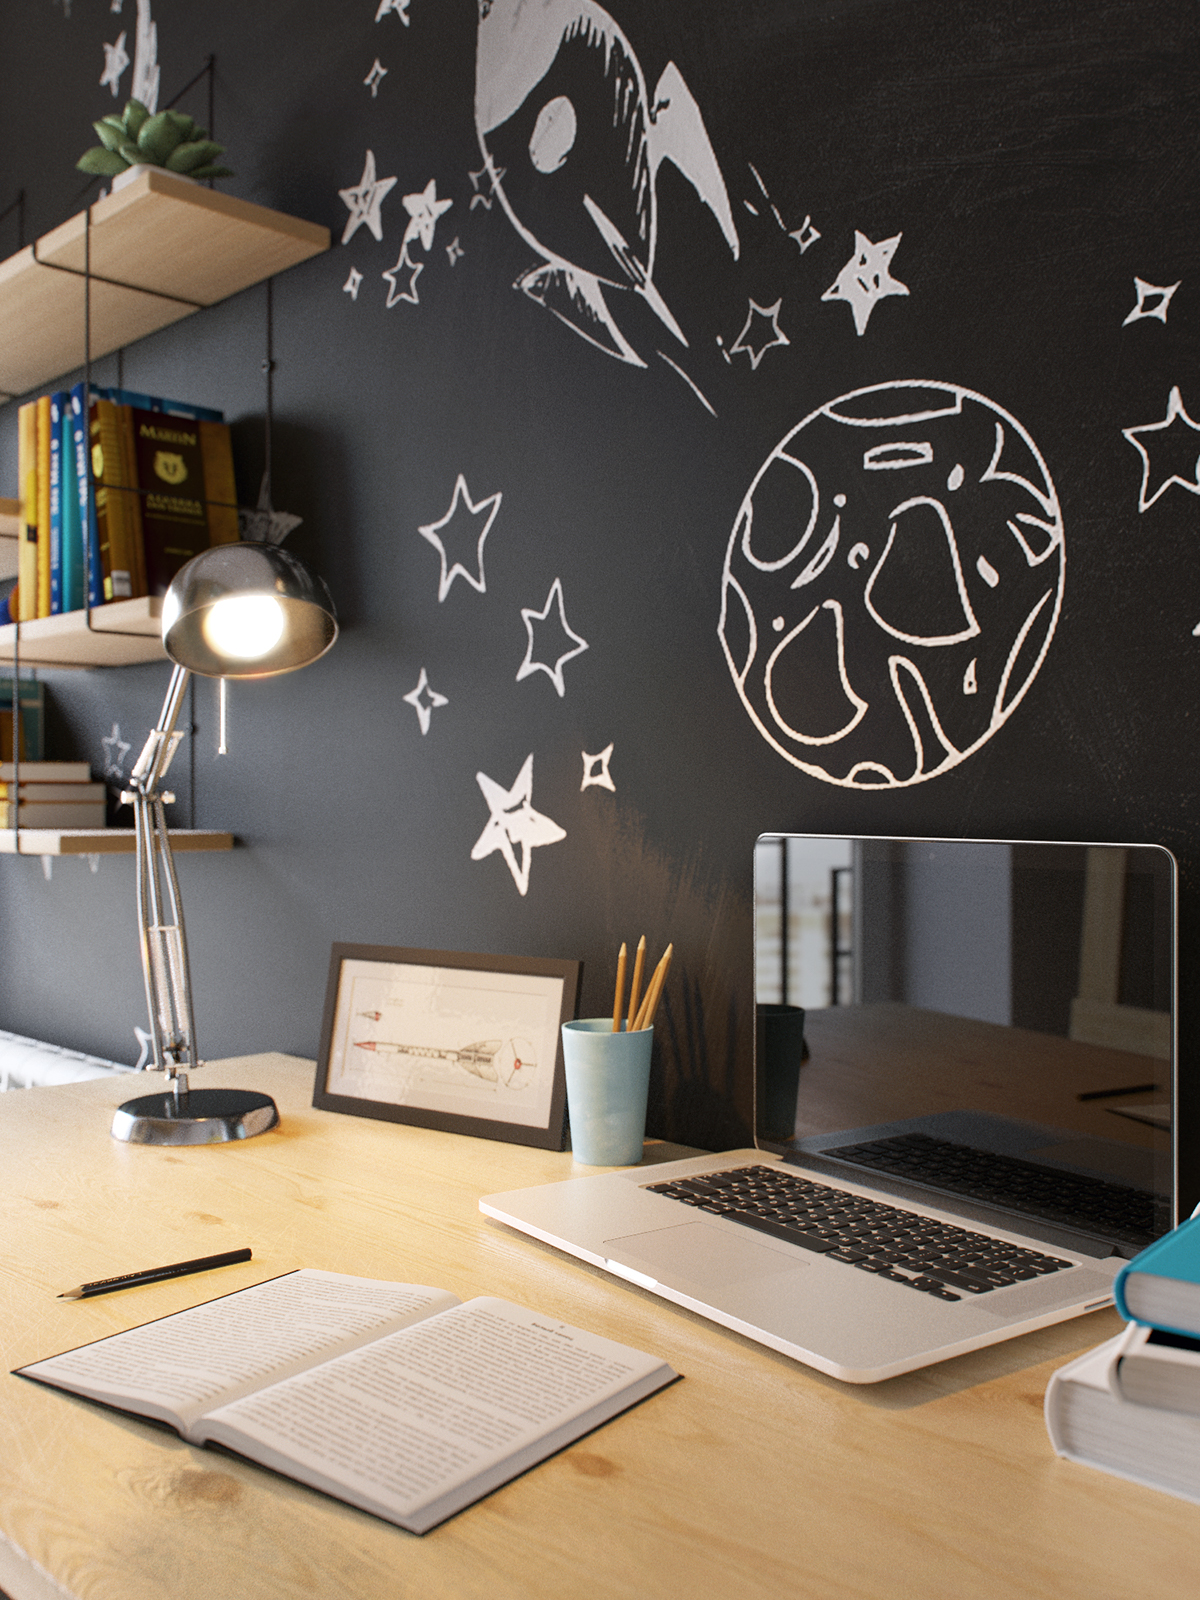 04-An-industrial-lamp-makes-the-study-space-more-stylish